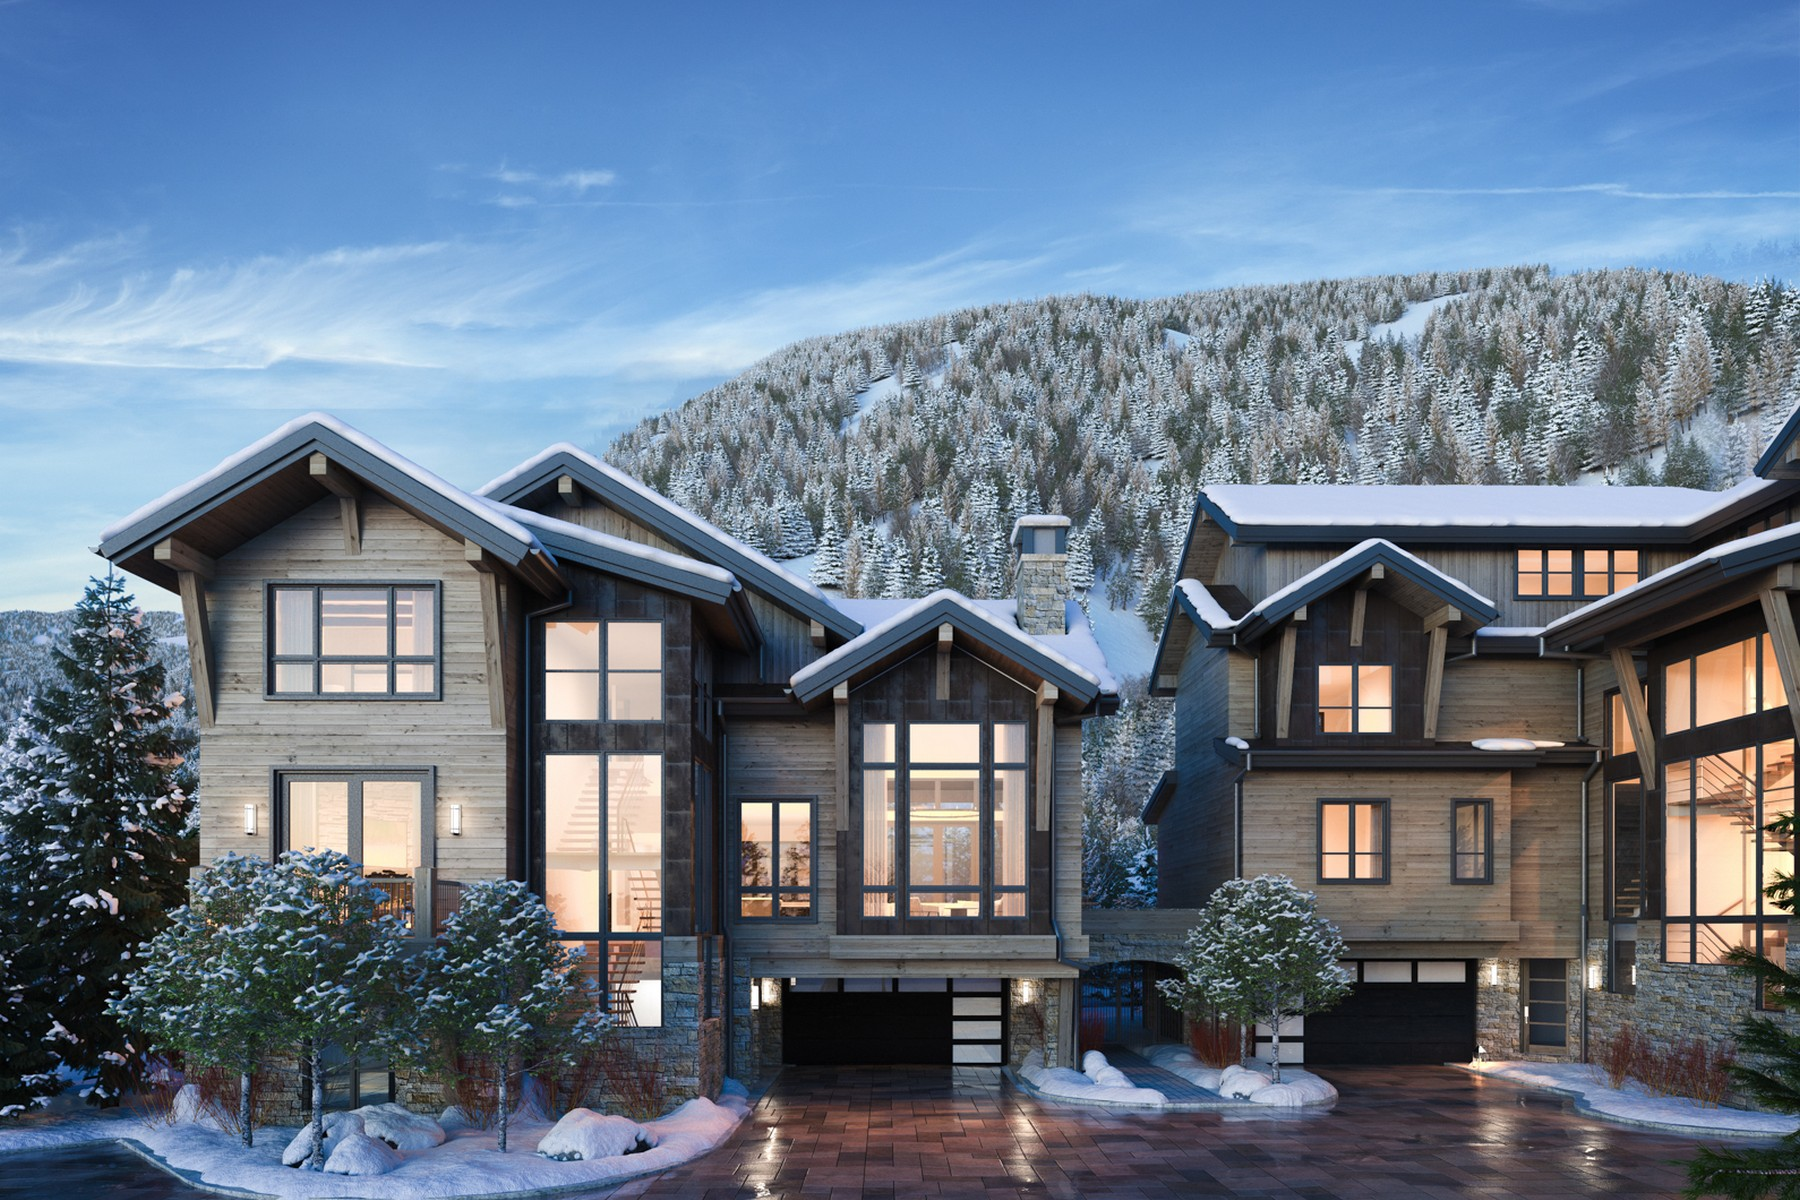 Single Family Homes for Sale at Peregrine Villas 185 Elk Track Road Beaver Creek, Colorado 81620 United States